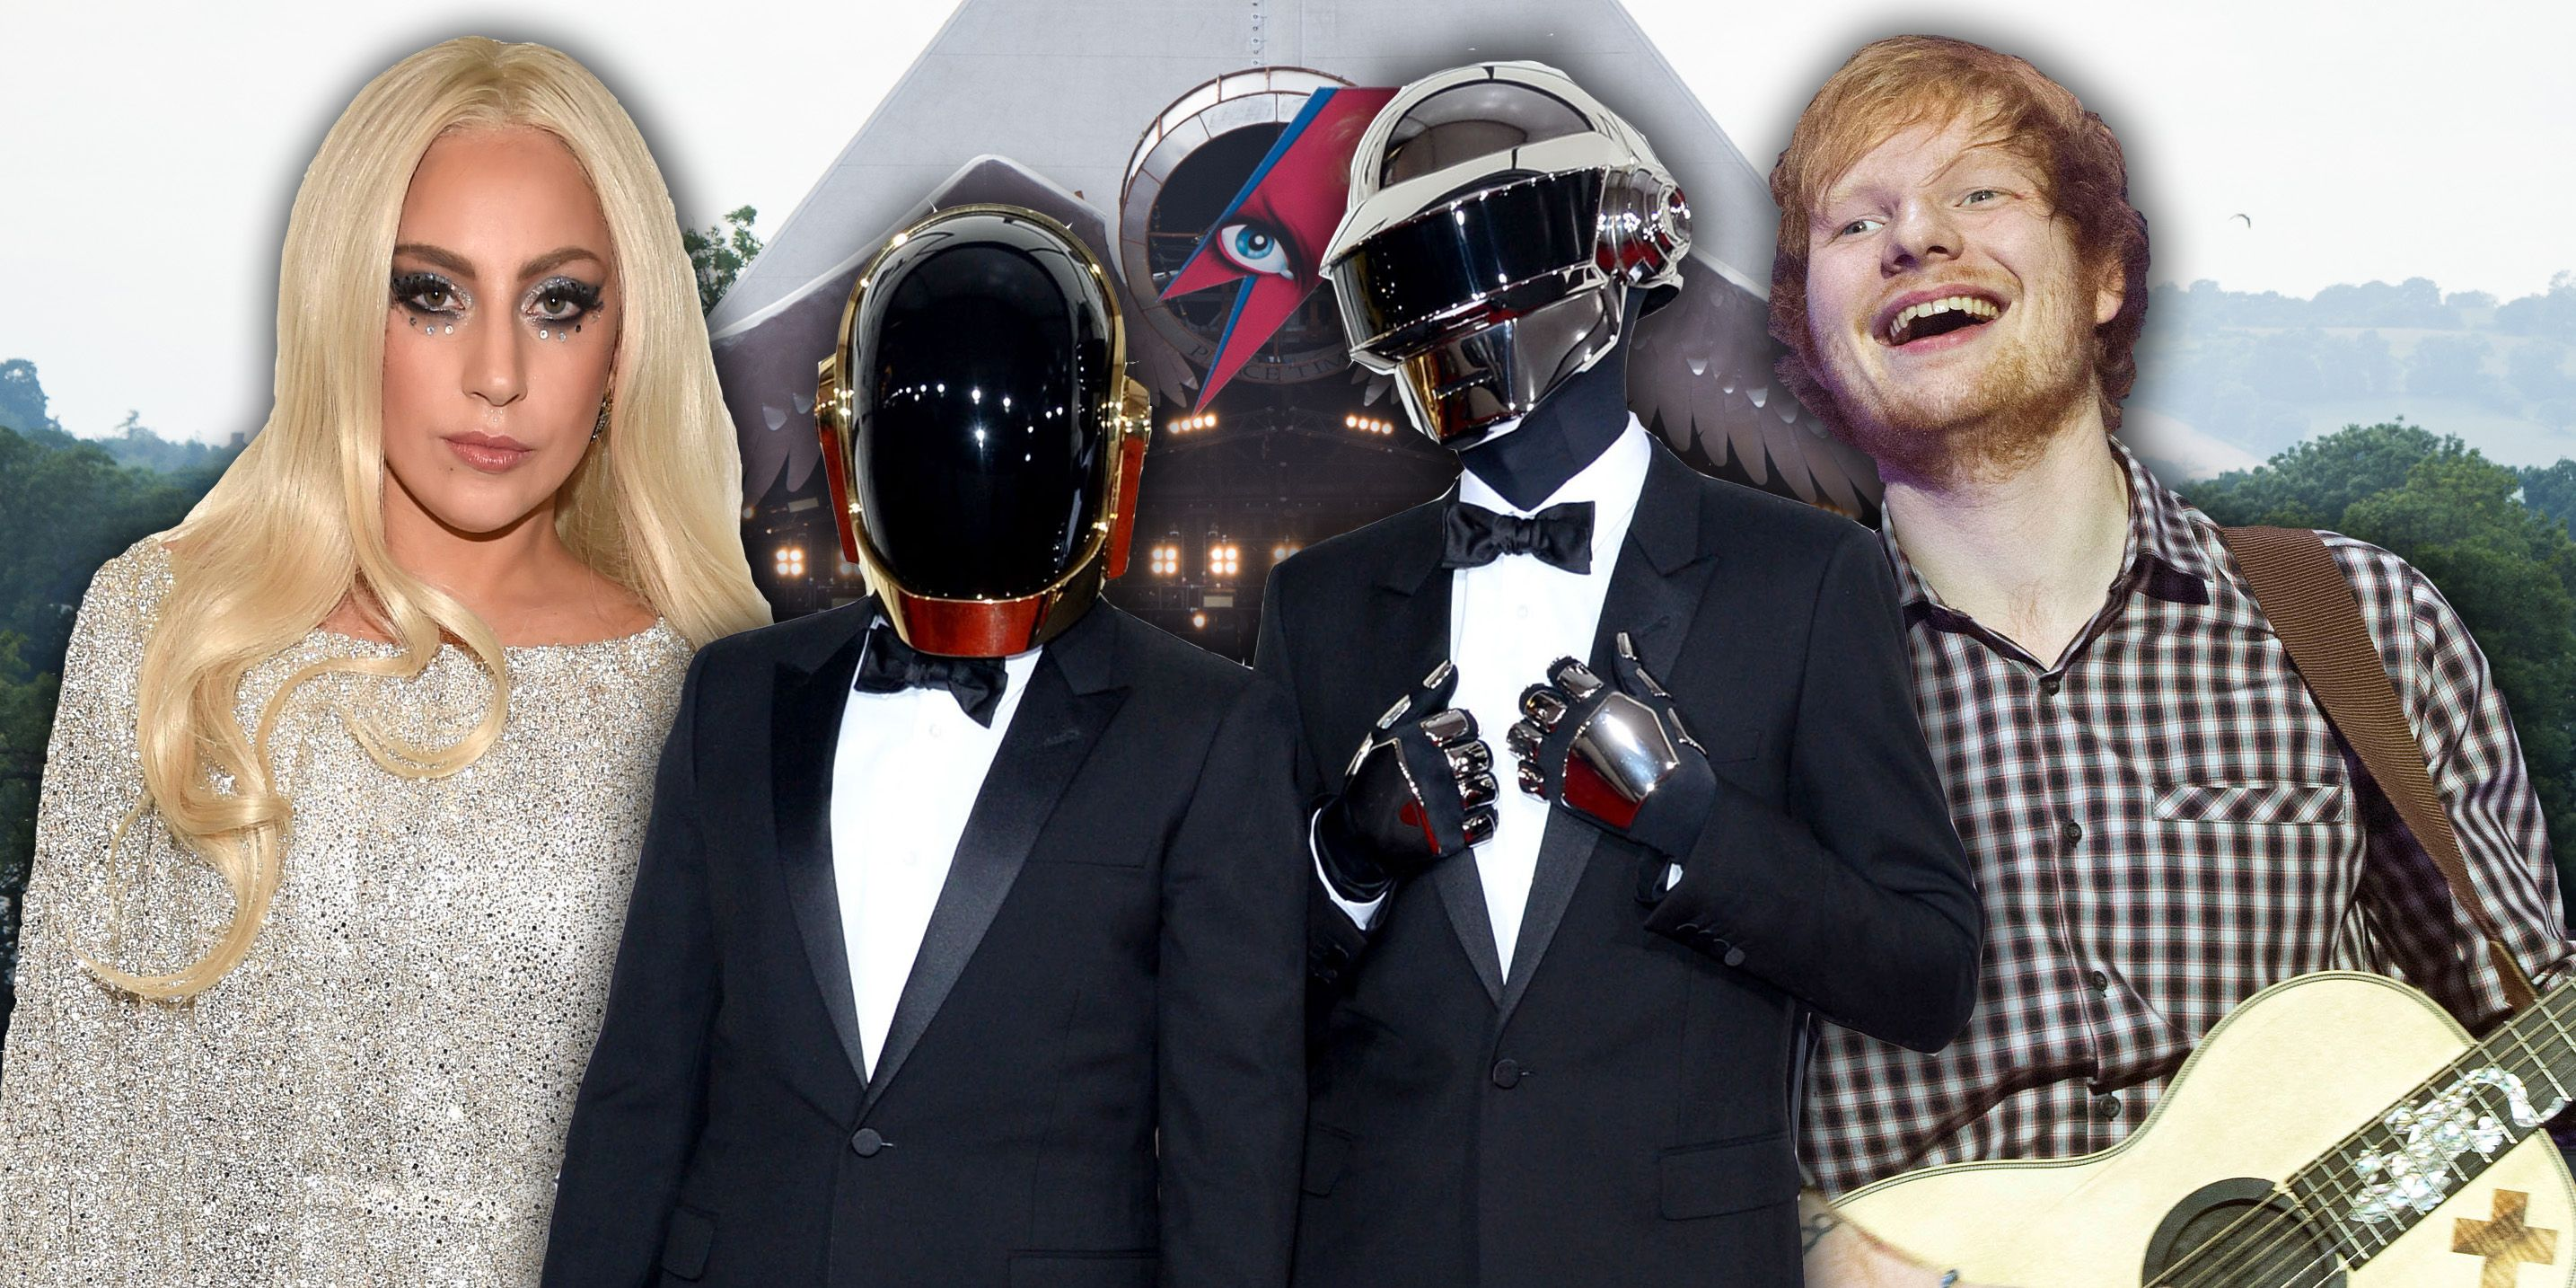 Lady Gaga / Daft Punk / Ed Sheeran